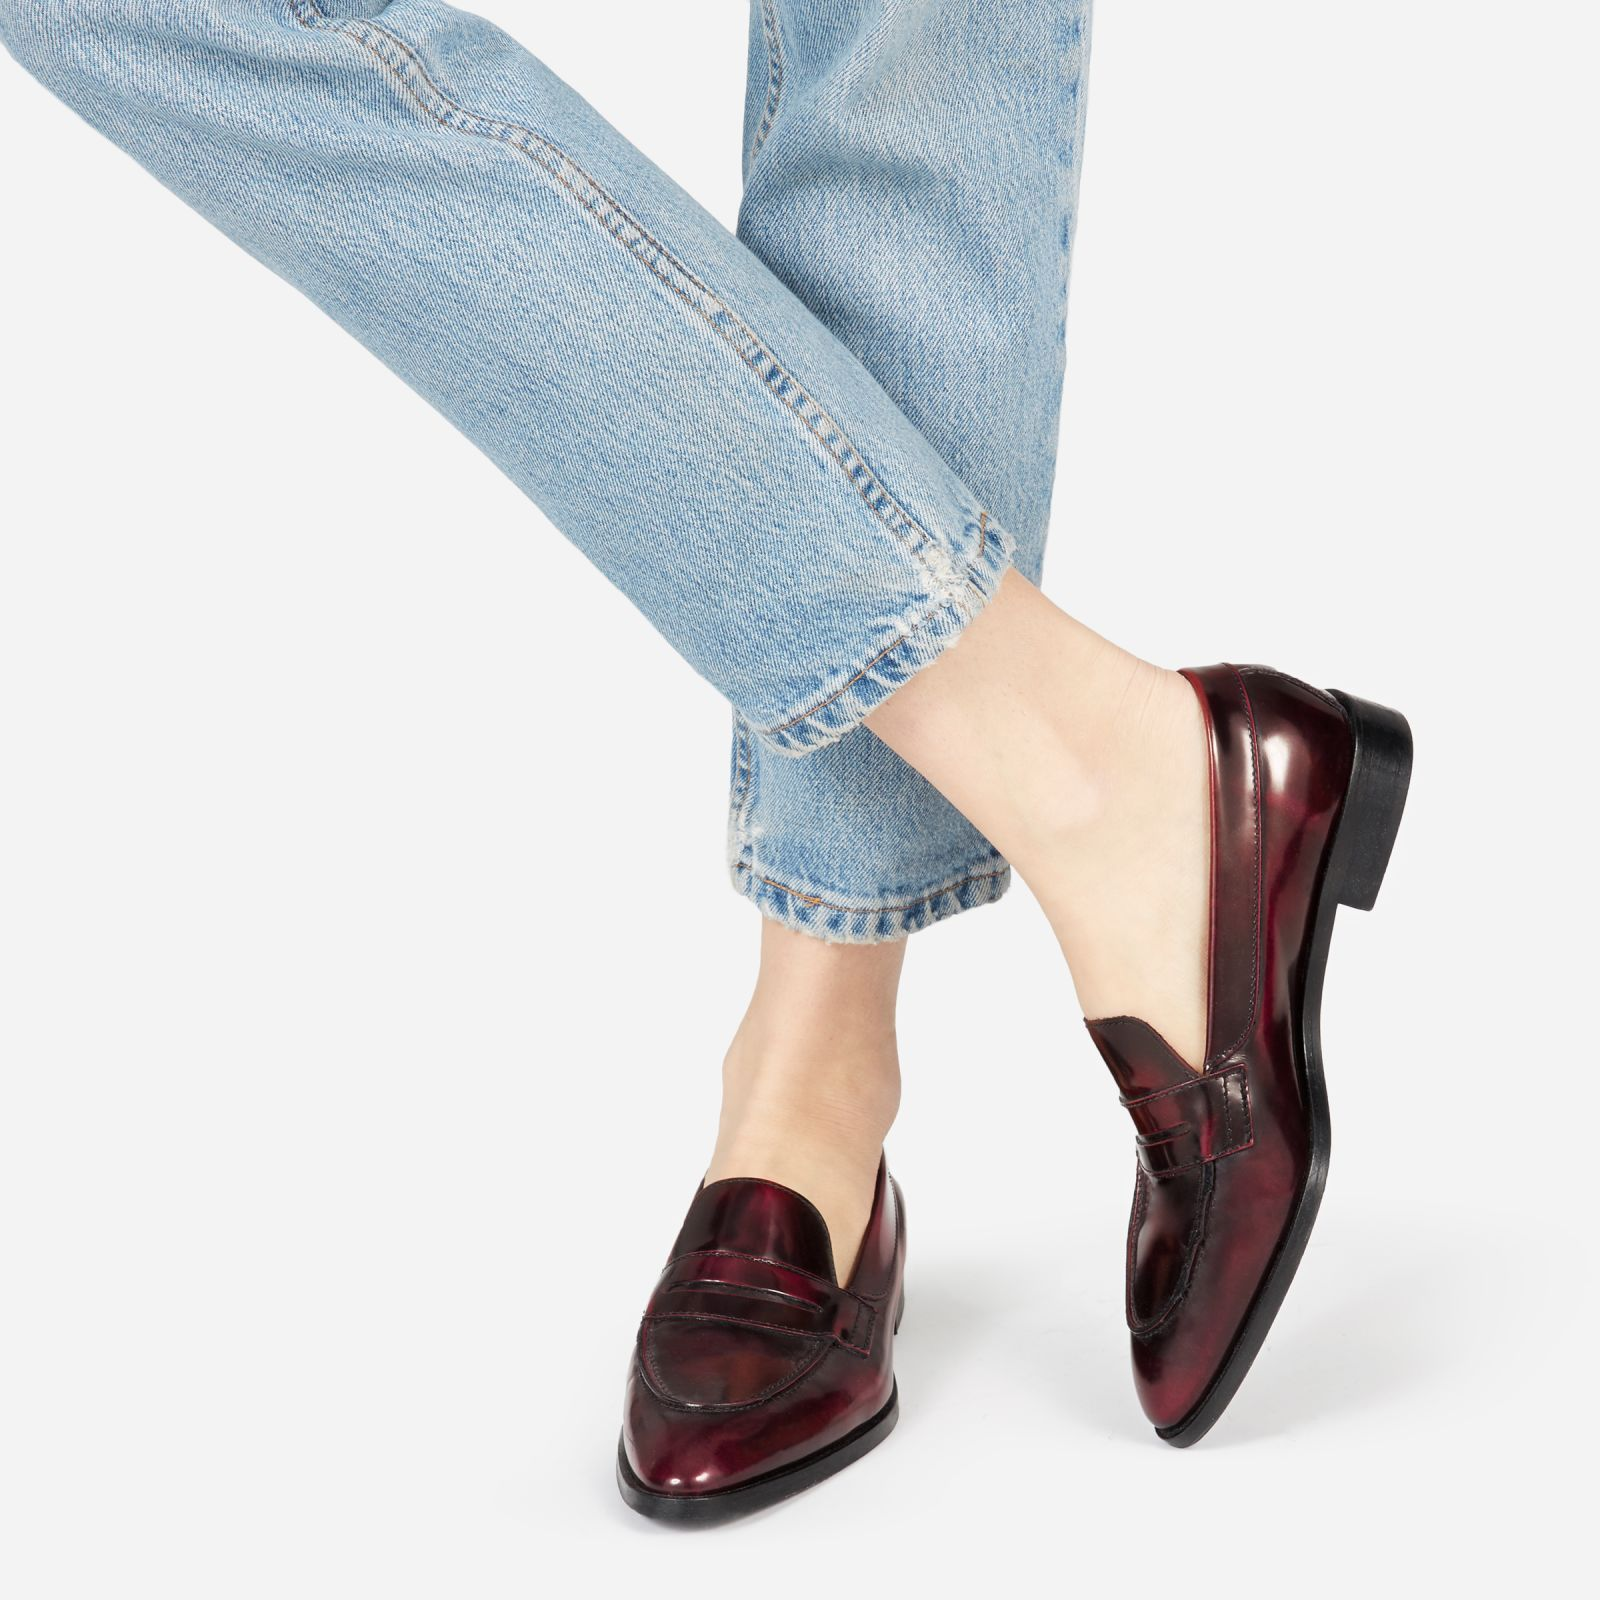 aa8f4d880c9db9 Women's Penny Loafers by Everlane in Oxblood | Products in 2019 ...